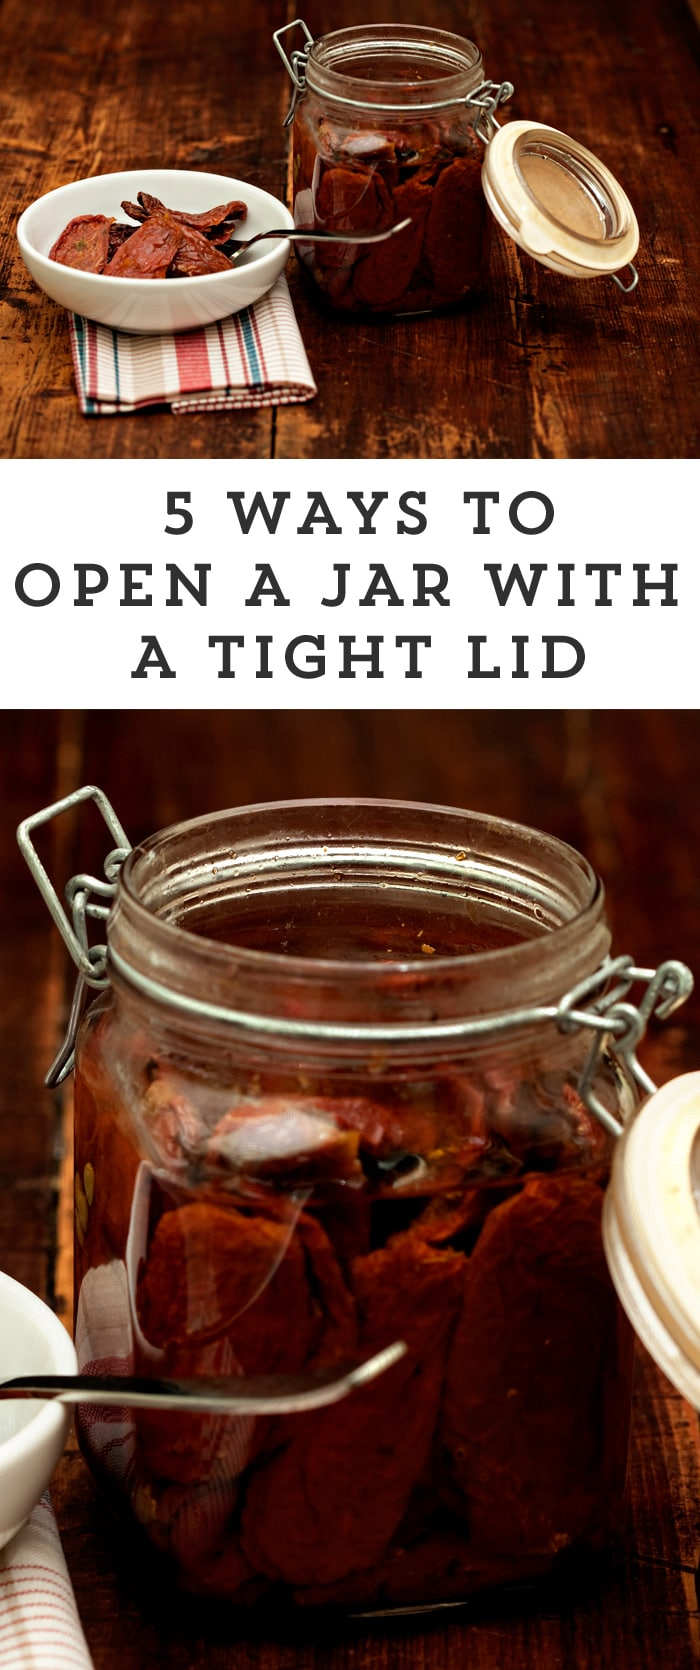 Have you ever found yourself trying to open a particularly stubborn jar? Here are 5 proven tips to help you open a tight lid.